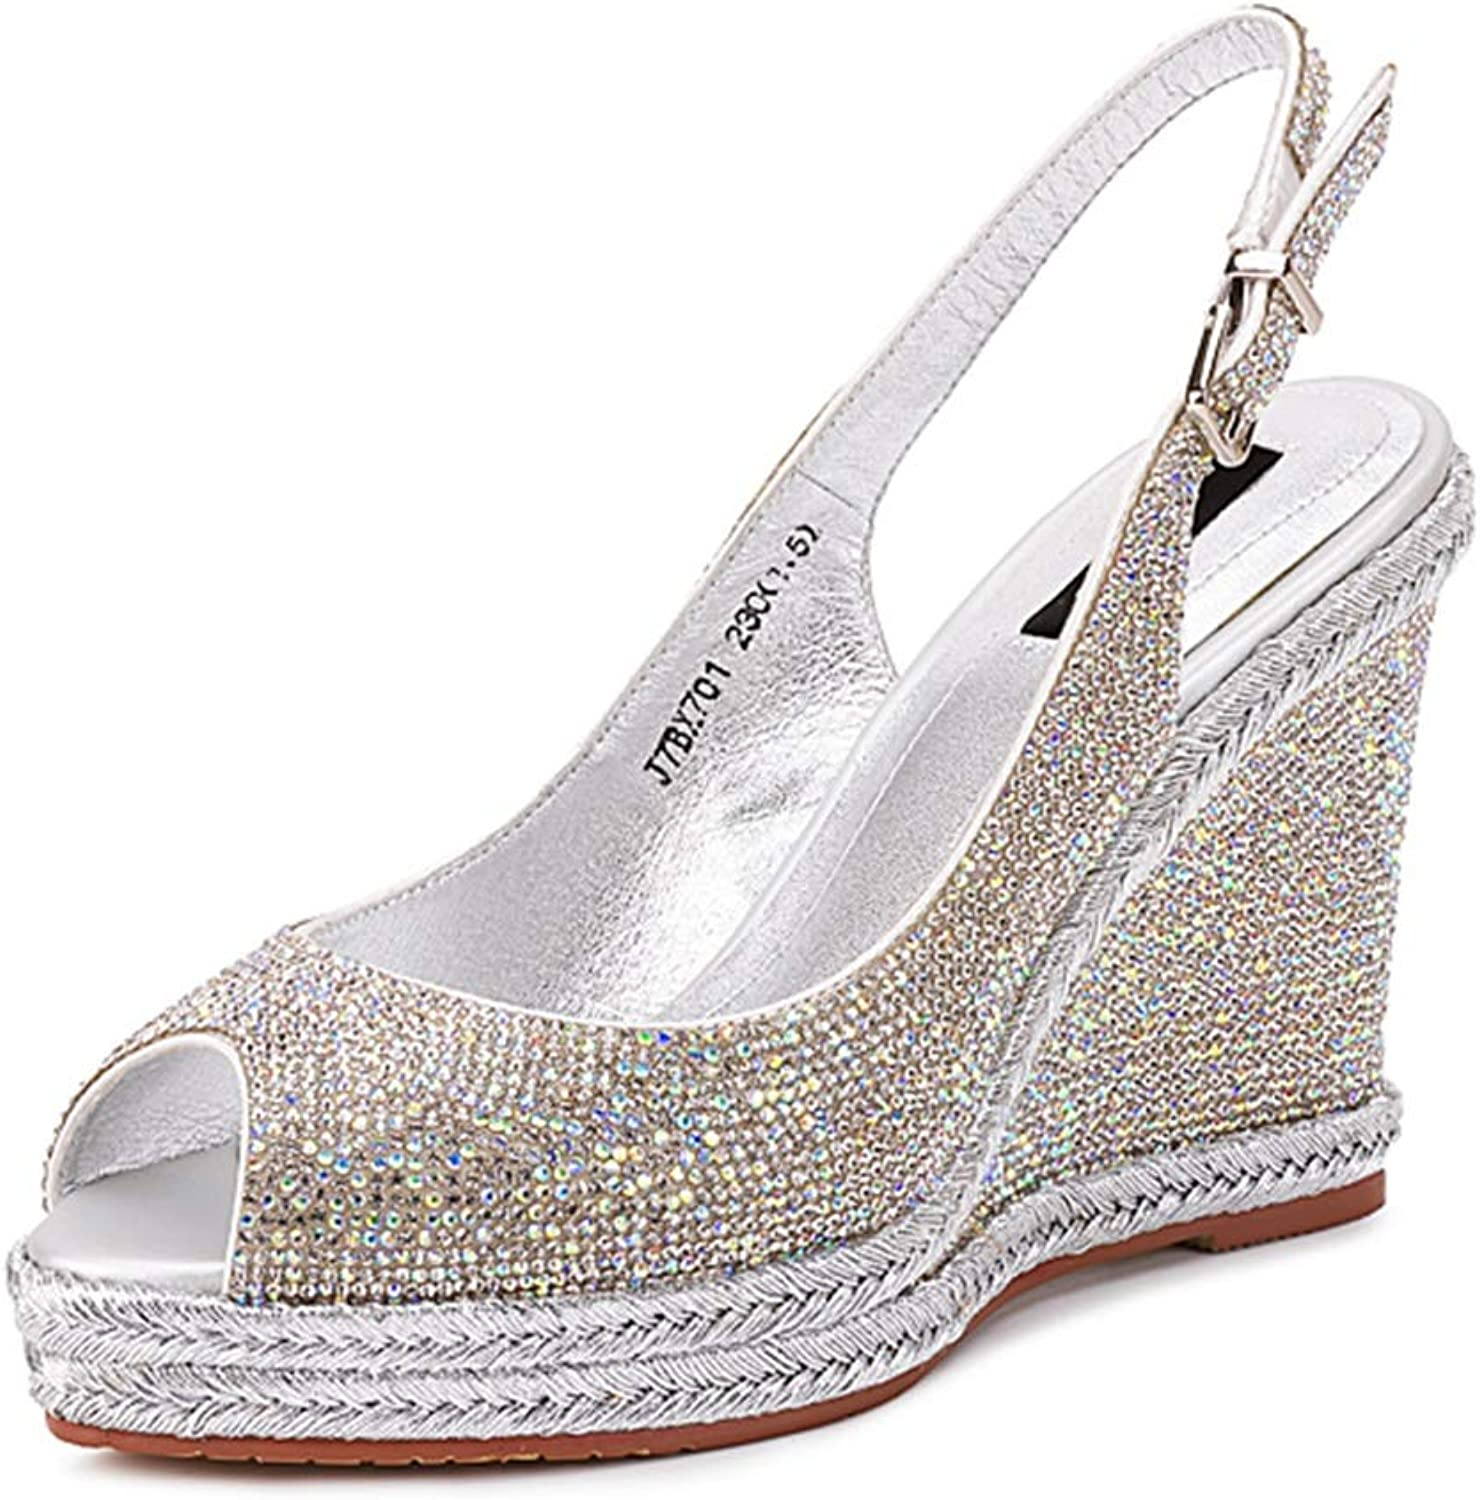 Sandals Women's High Heels New Women's shoes Spring and Summer Heels Fish Mouth High Heels Rhinestone Wedge Sandals Fashion Women's shoes (color   Silver, Size   39)